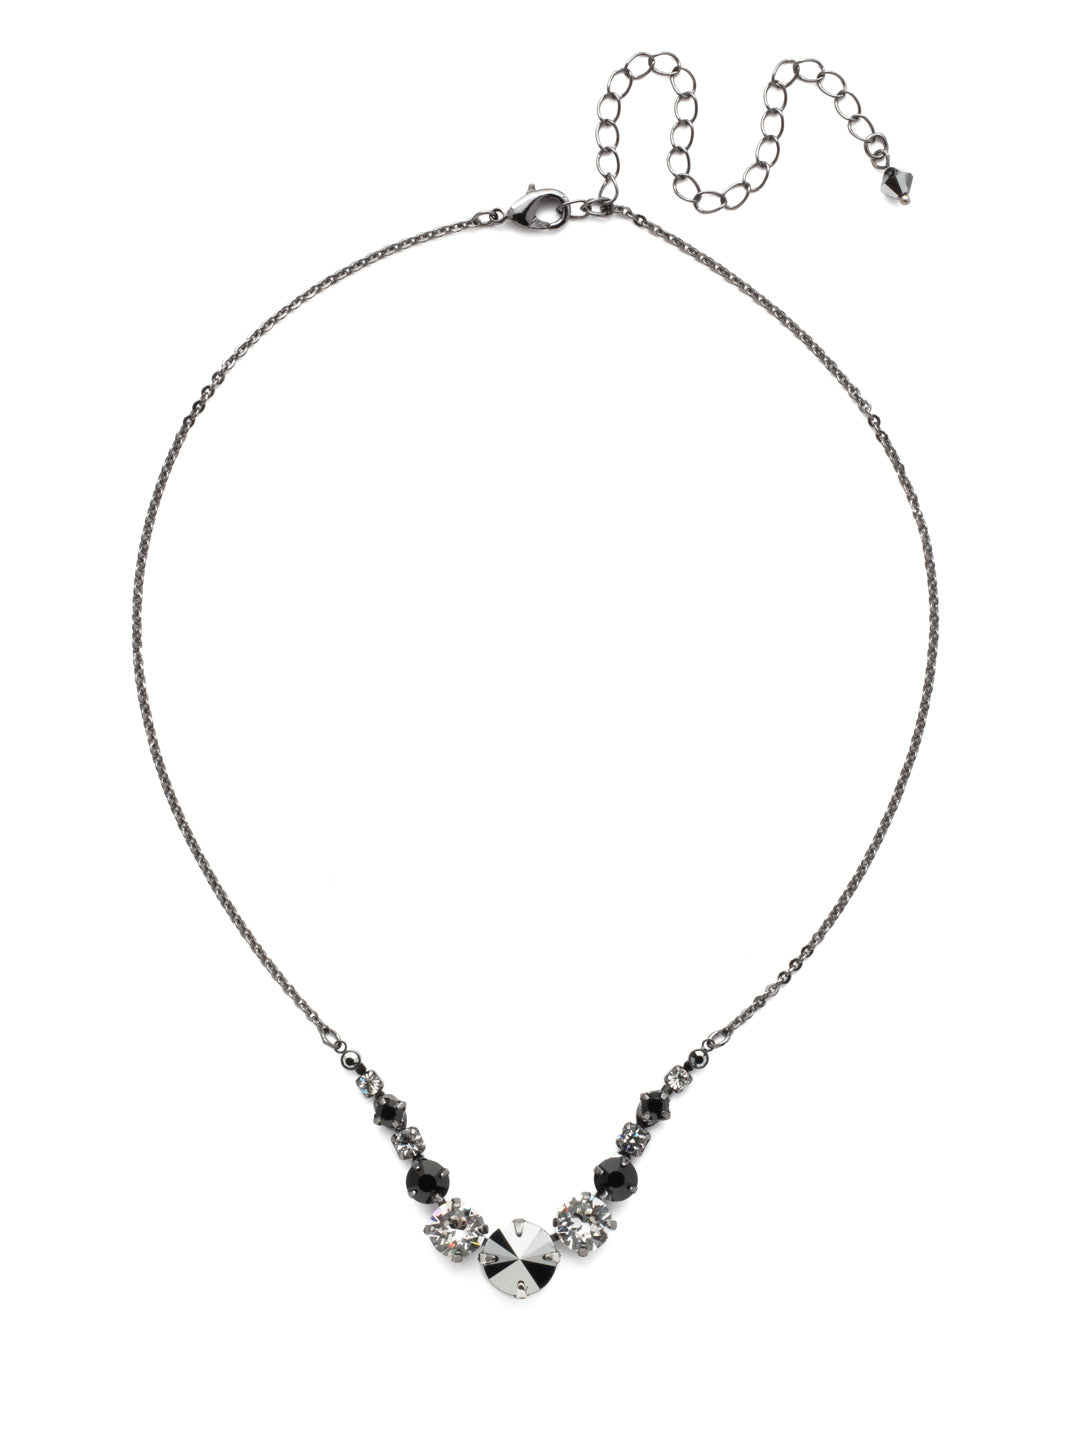 Midnight Moon Sorrelli Necklace and Earring Set NCQ14 $95